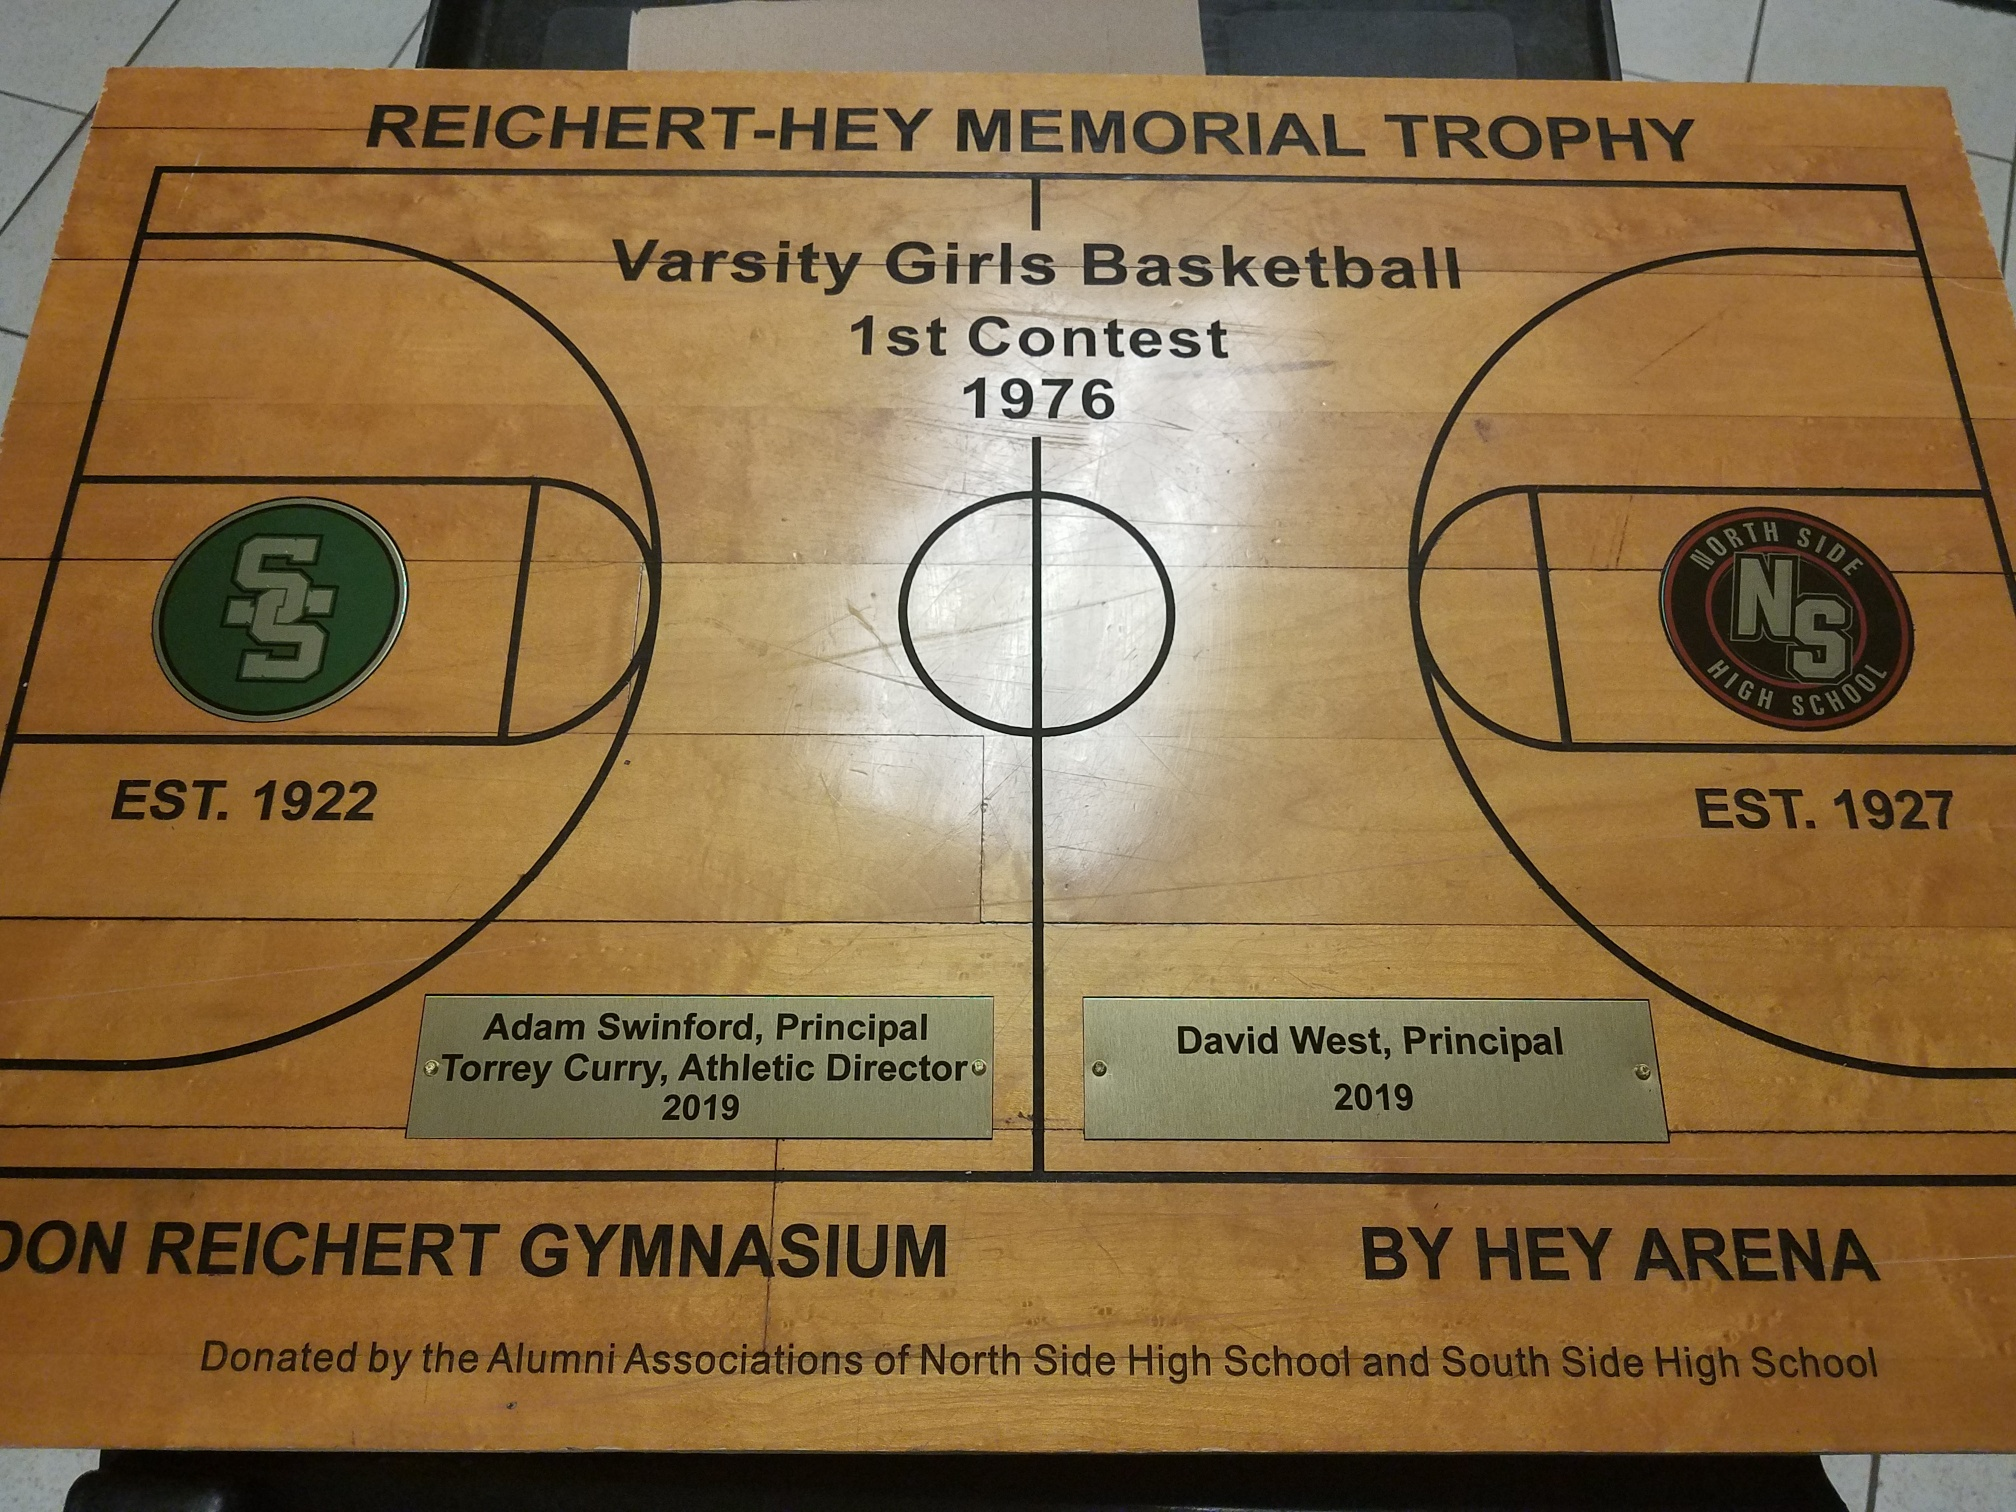 Reichert-Hey Memorial Trophy adds new stakes to South Side/North Side rivalry